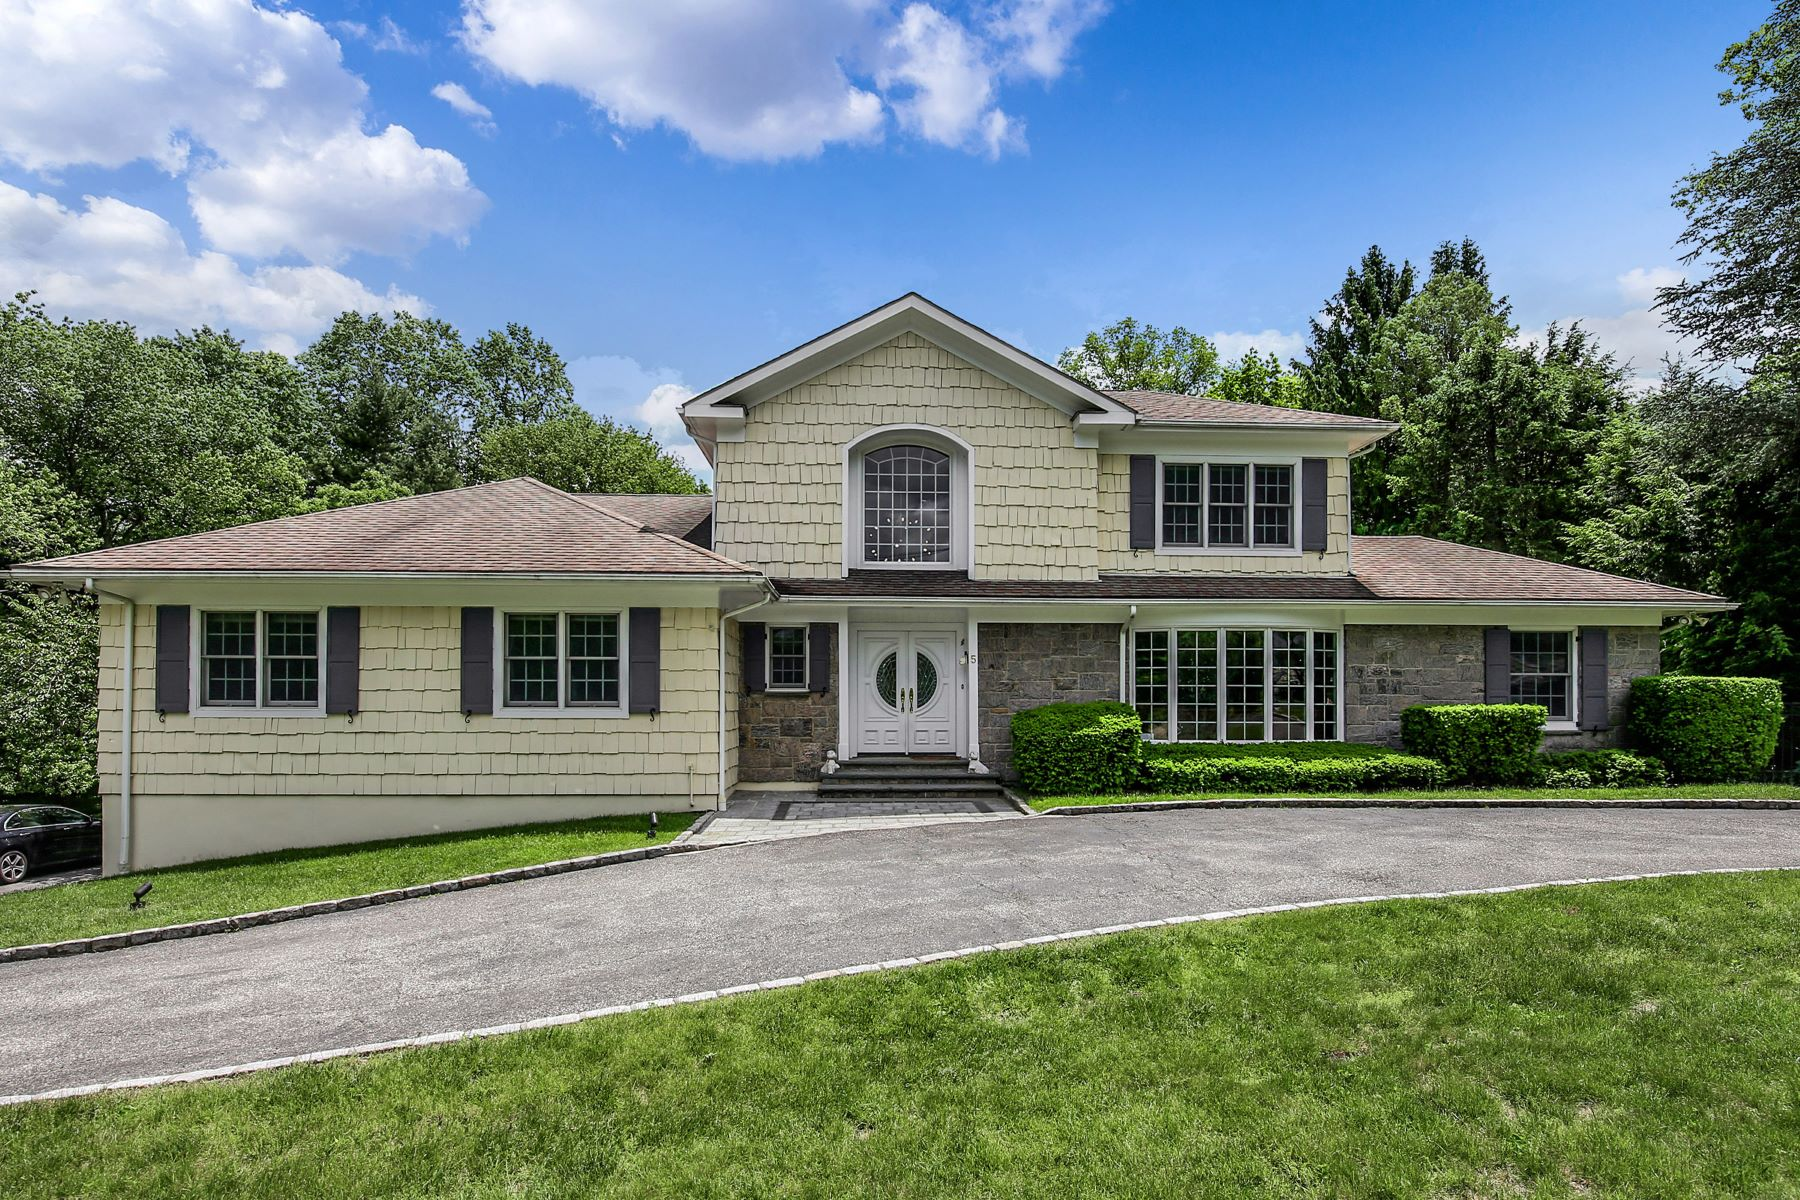 Single Family Homes for Active at 5 Sunset Lane Harrison, New York 10528 United States